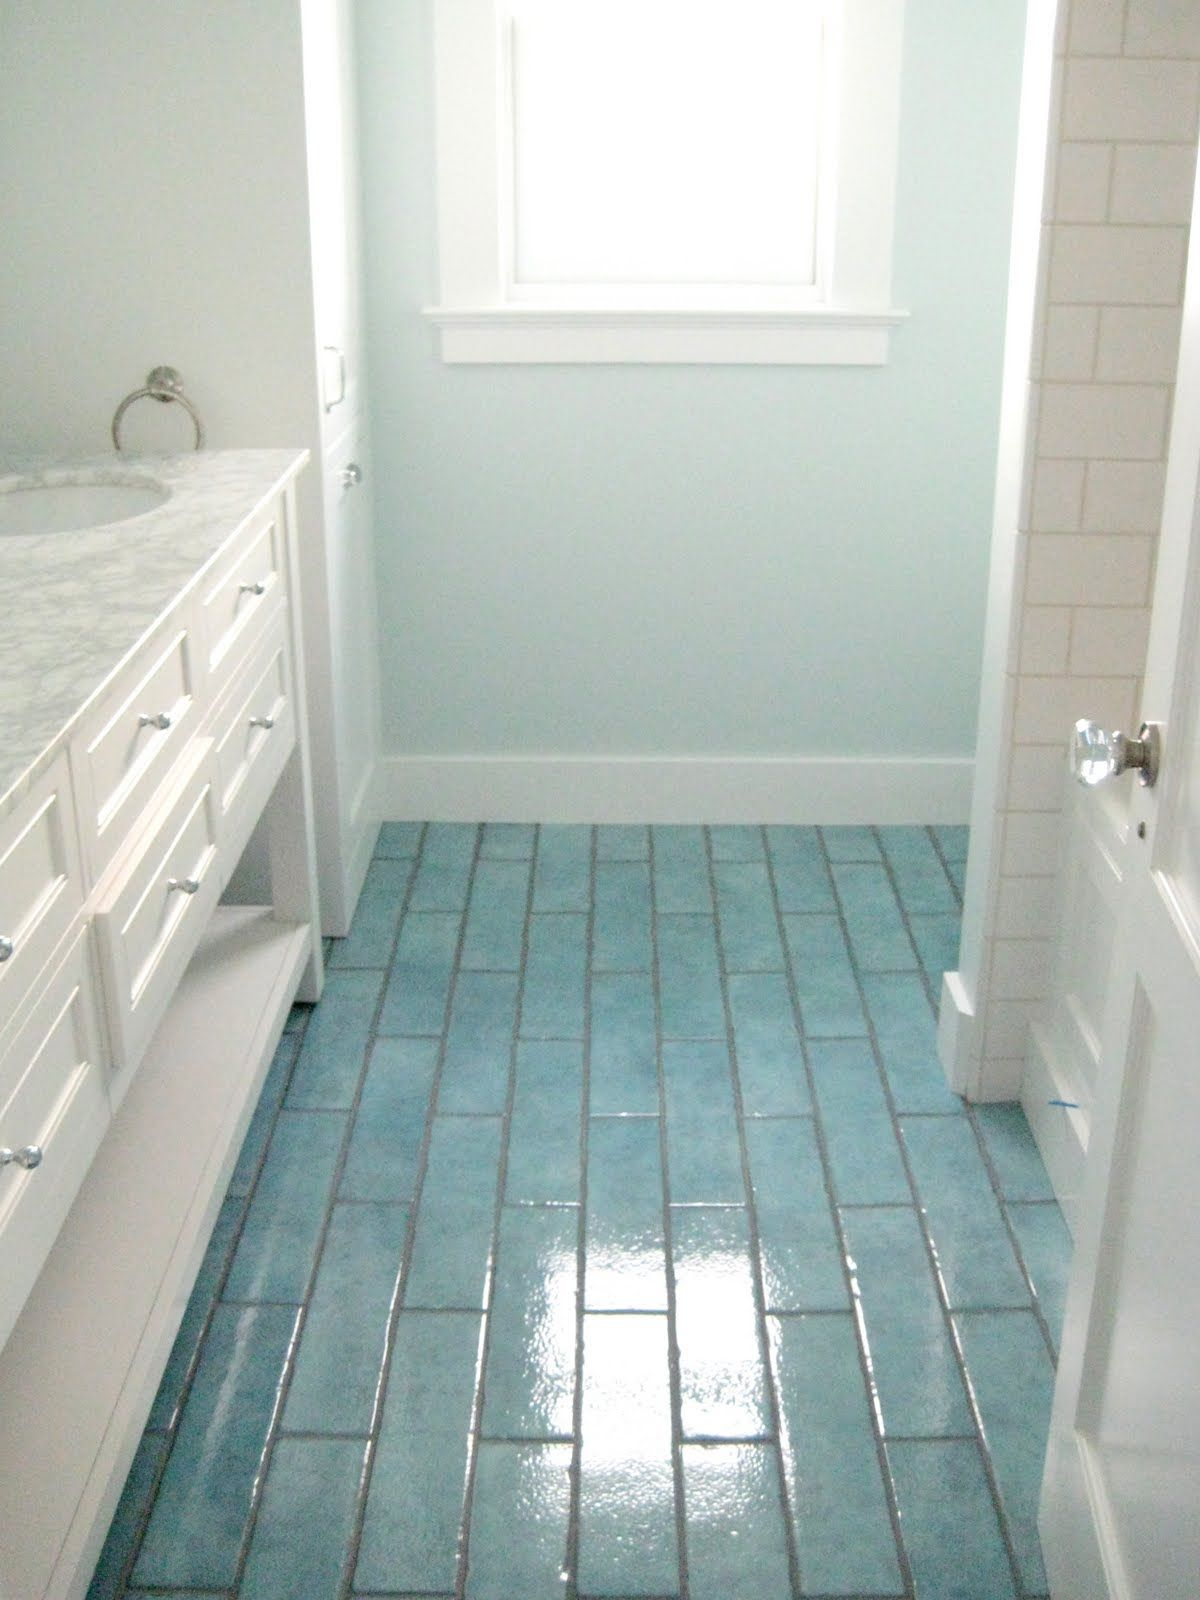 Tar Paper Crane - A Remodeling Blog: DIY Bathroom Design - Part 2 ...